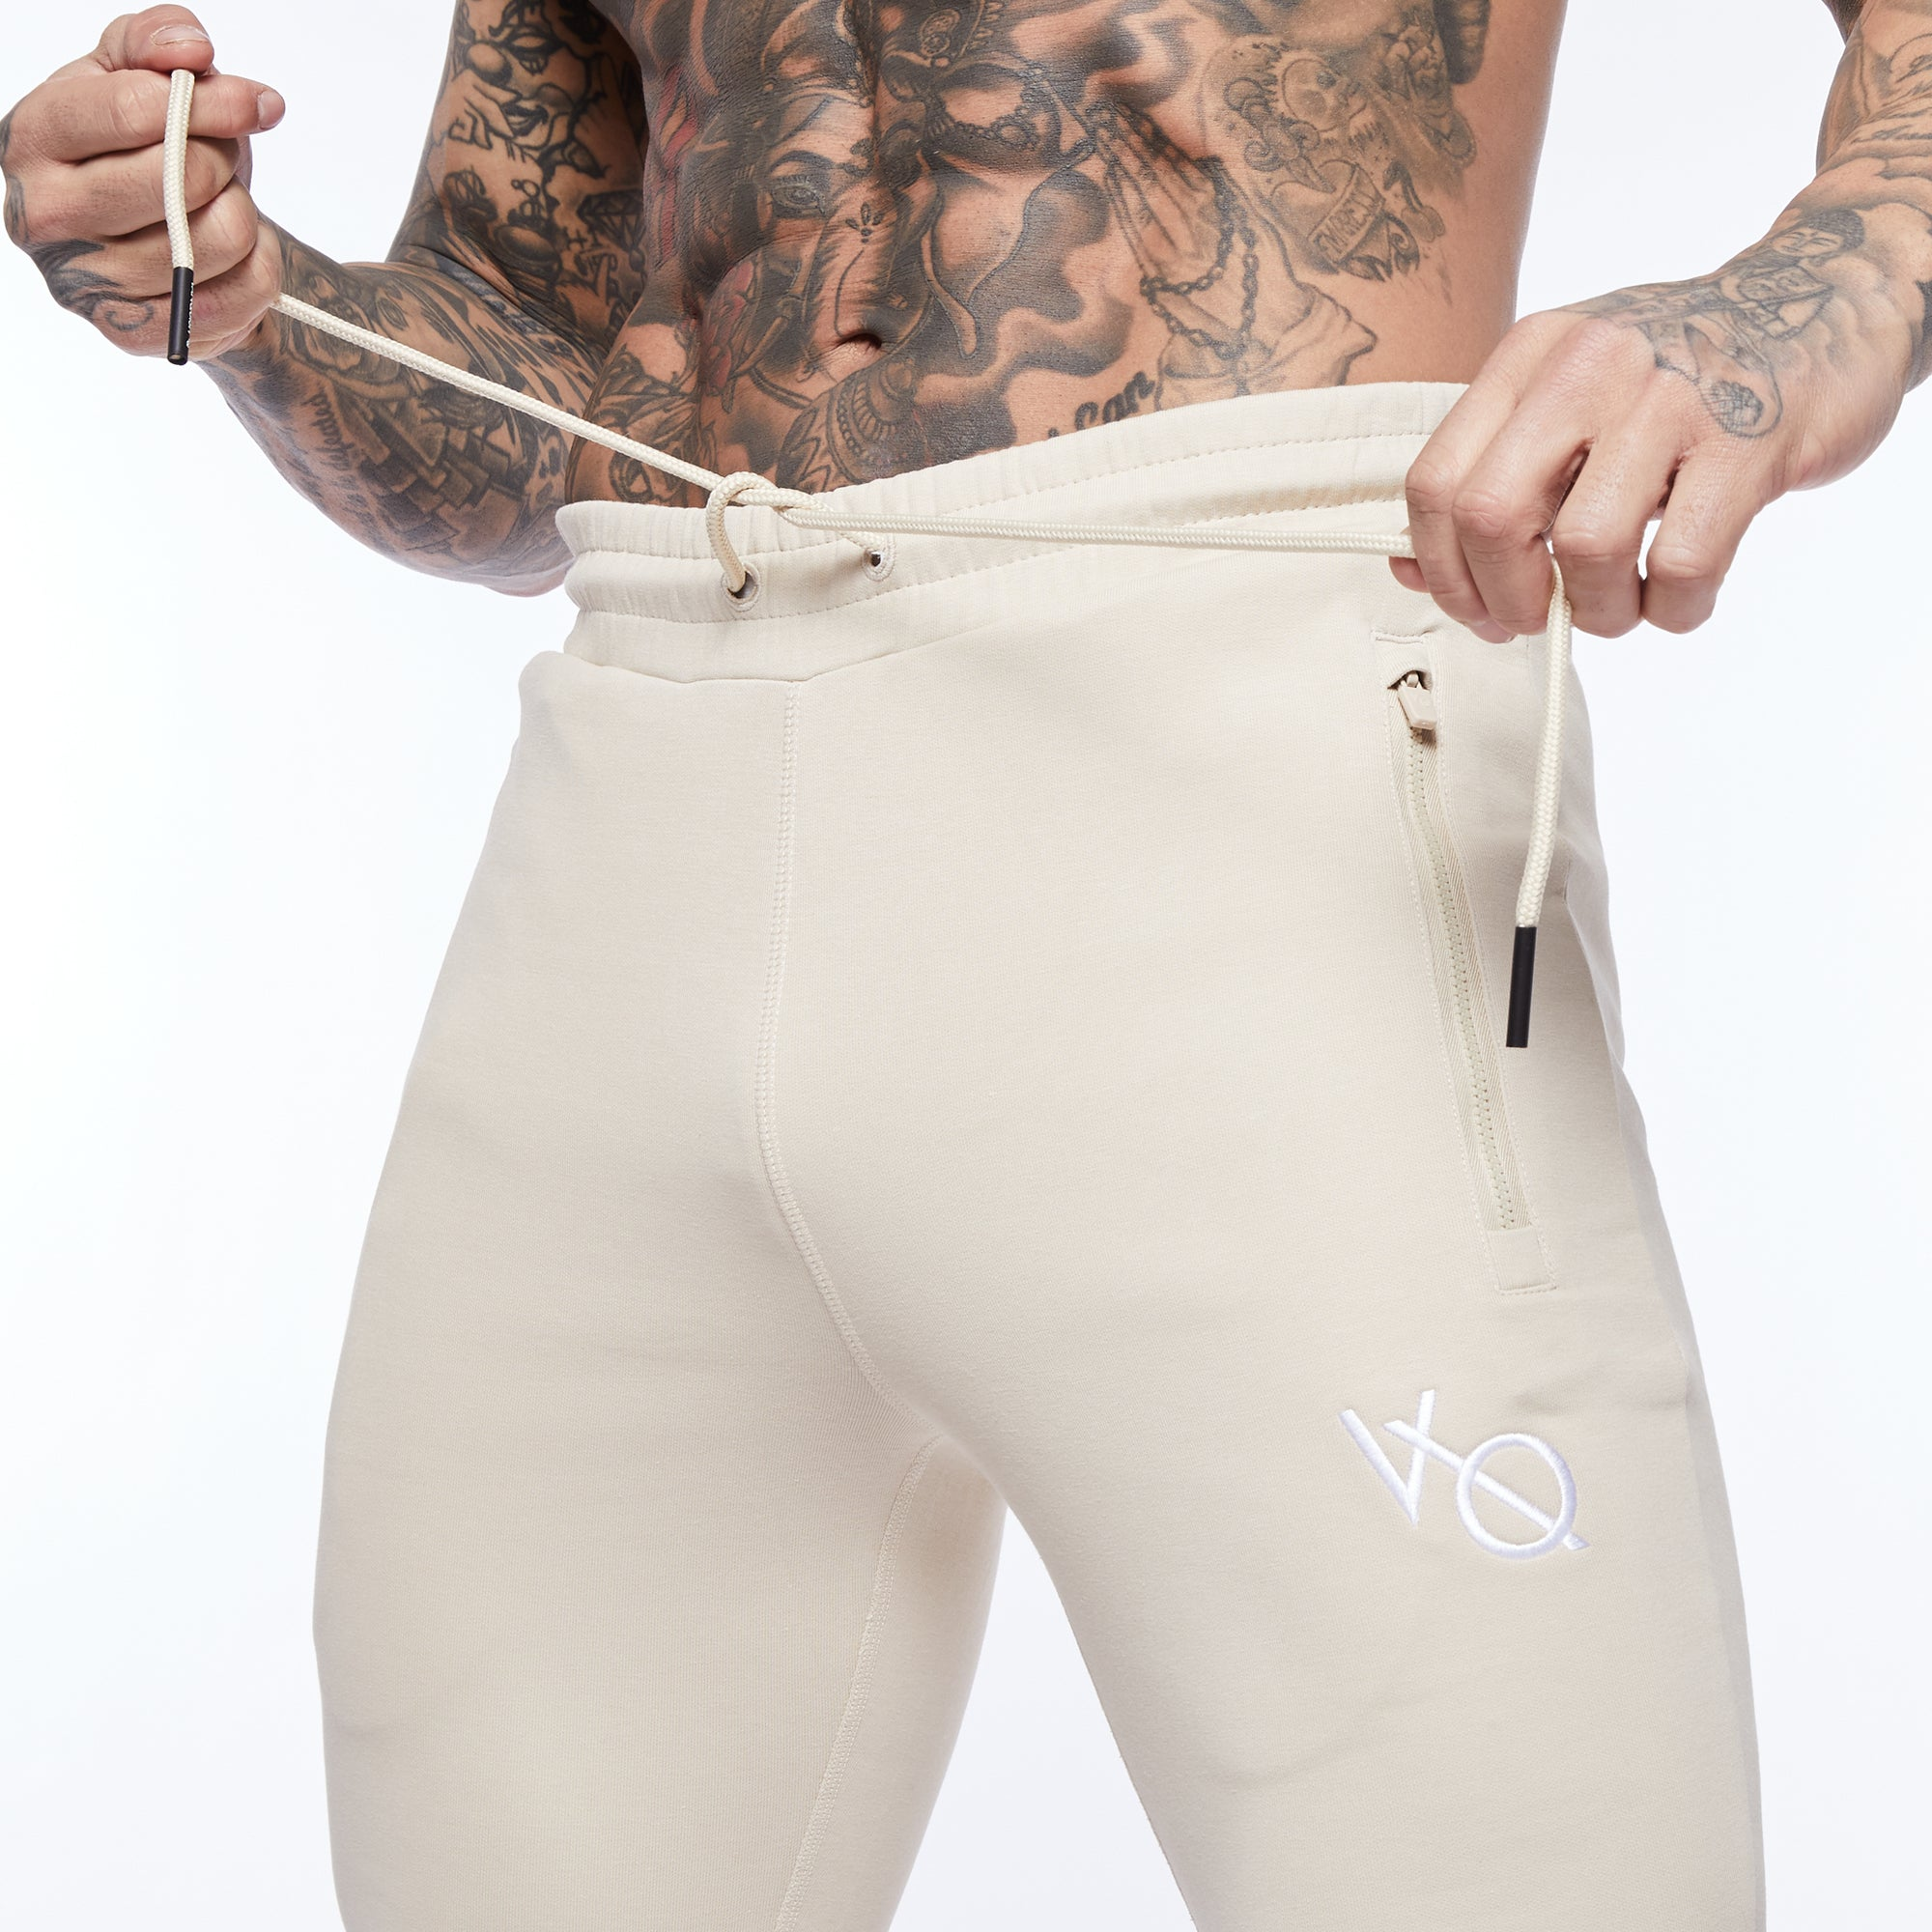 Vanquish Essential Stone Tapered Sweatpants